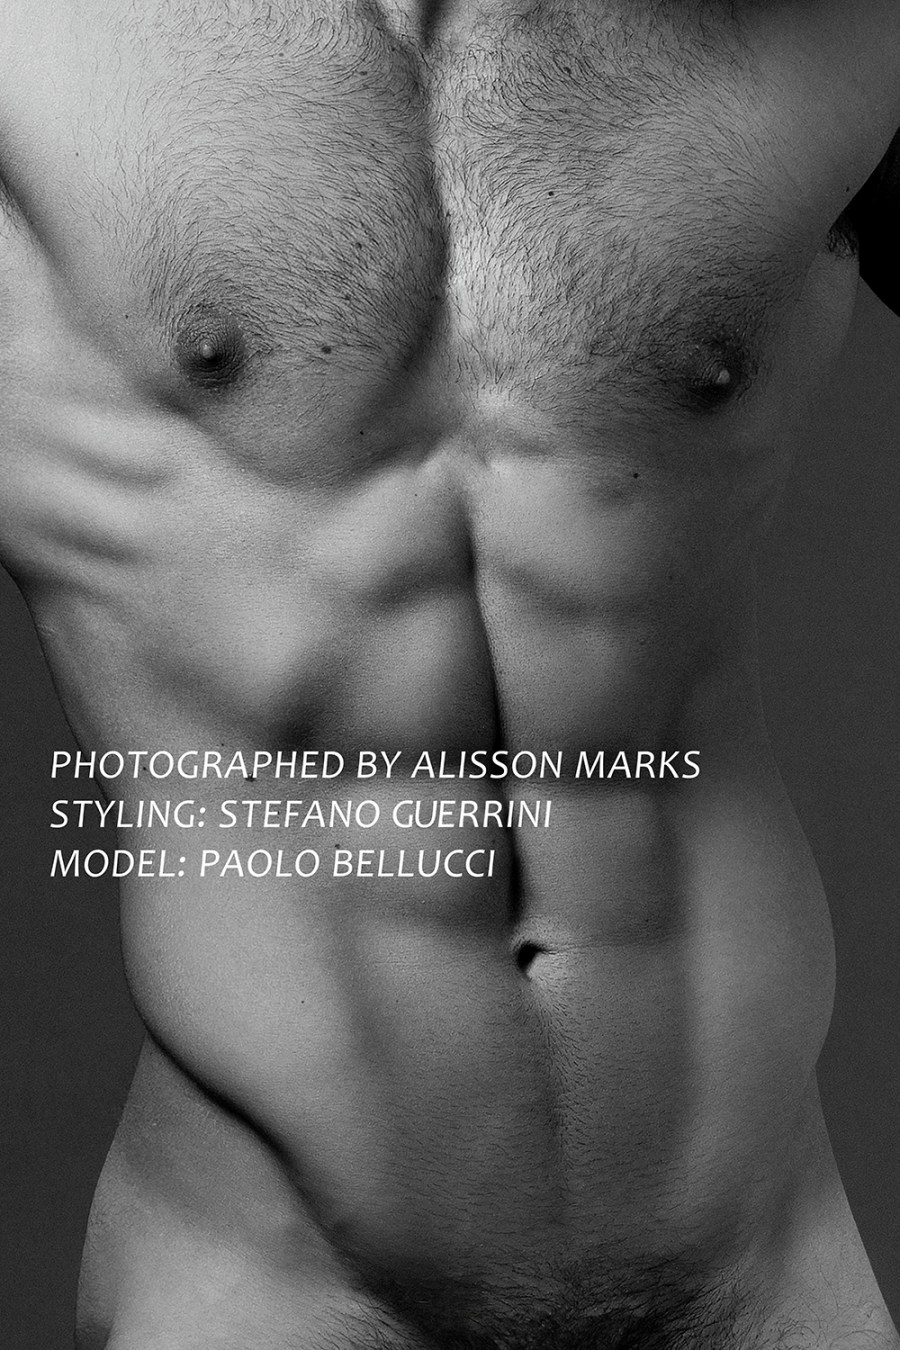 Italian new hunk Paolo Bellucci get 'bodylicius' by Alisson Marks and magical touch by stylist Stefan Guerrini in new sexy and splendid body shots. With more than 91K IG followers, (and counting) the segmental, the sexy stallion involved now in fashion work wearing pieces from head to toe, Dirk Bikkembergs, Les Hommes, Modus Vivendi, Christian Pellizzari among others. Alisson is used to work with strong fit European bodies like this, but I think with Paolo is a one big exception, he's a real hunk!